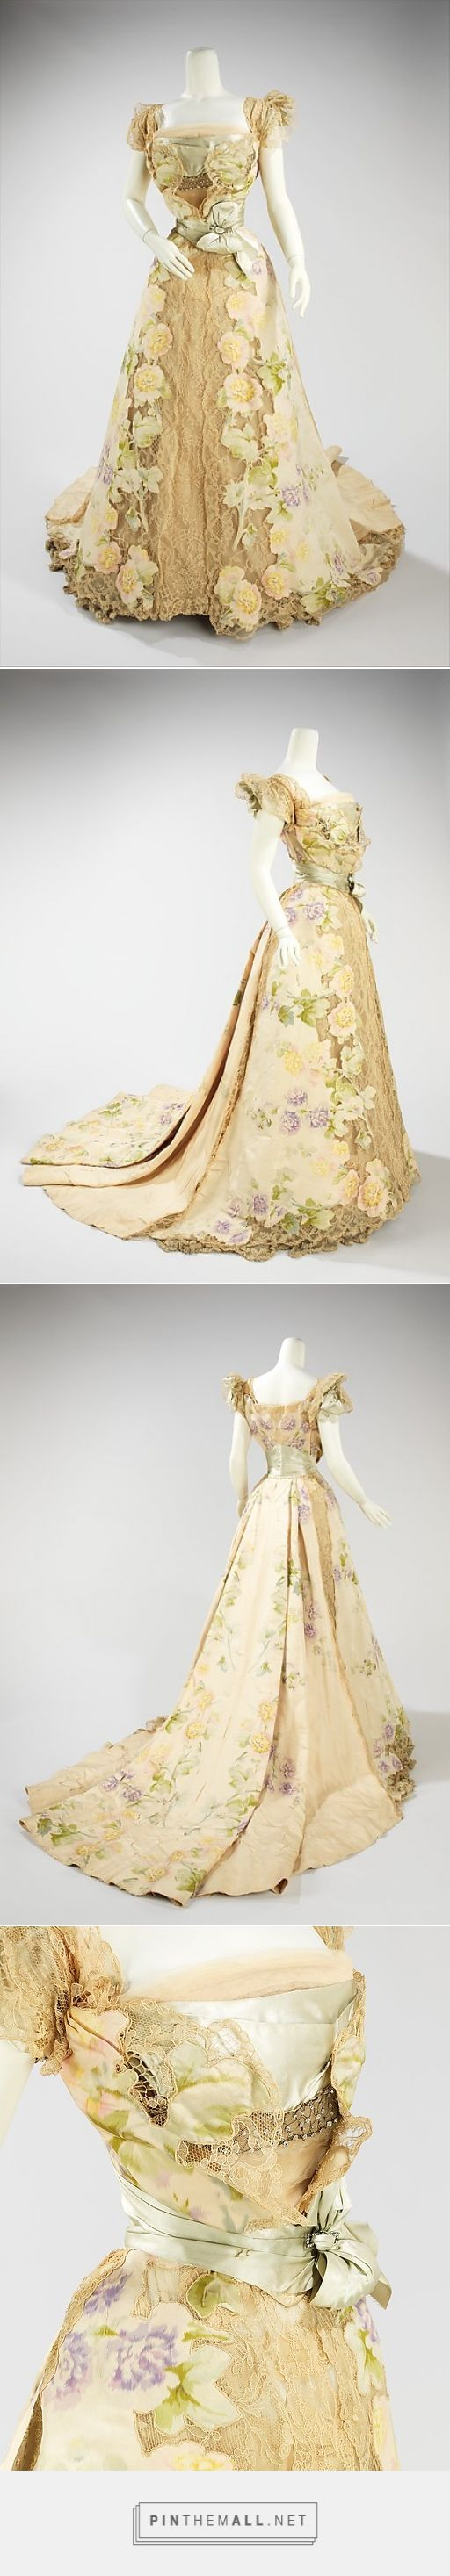 Evening dress by House of Worth 1902 French | The Metropolitan Museum of Art... - a grouped images picture - Pin Them All